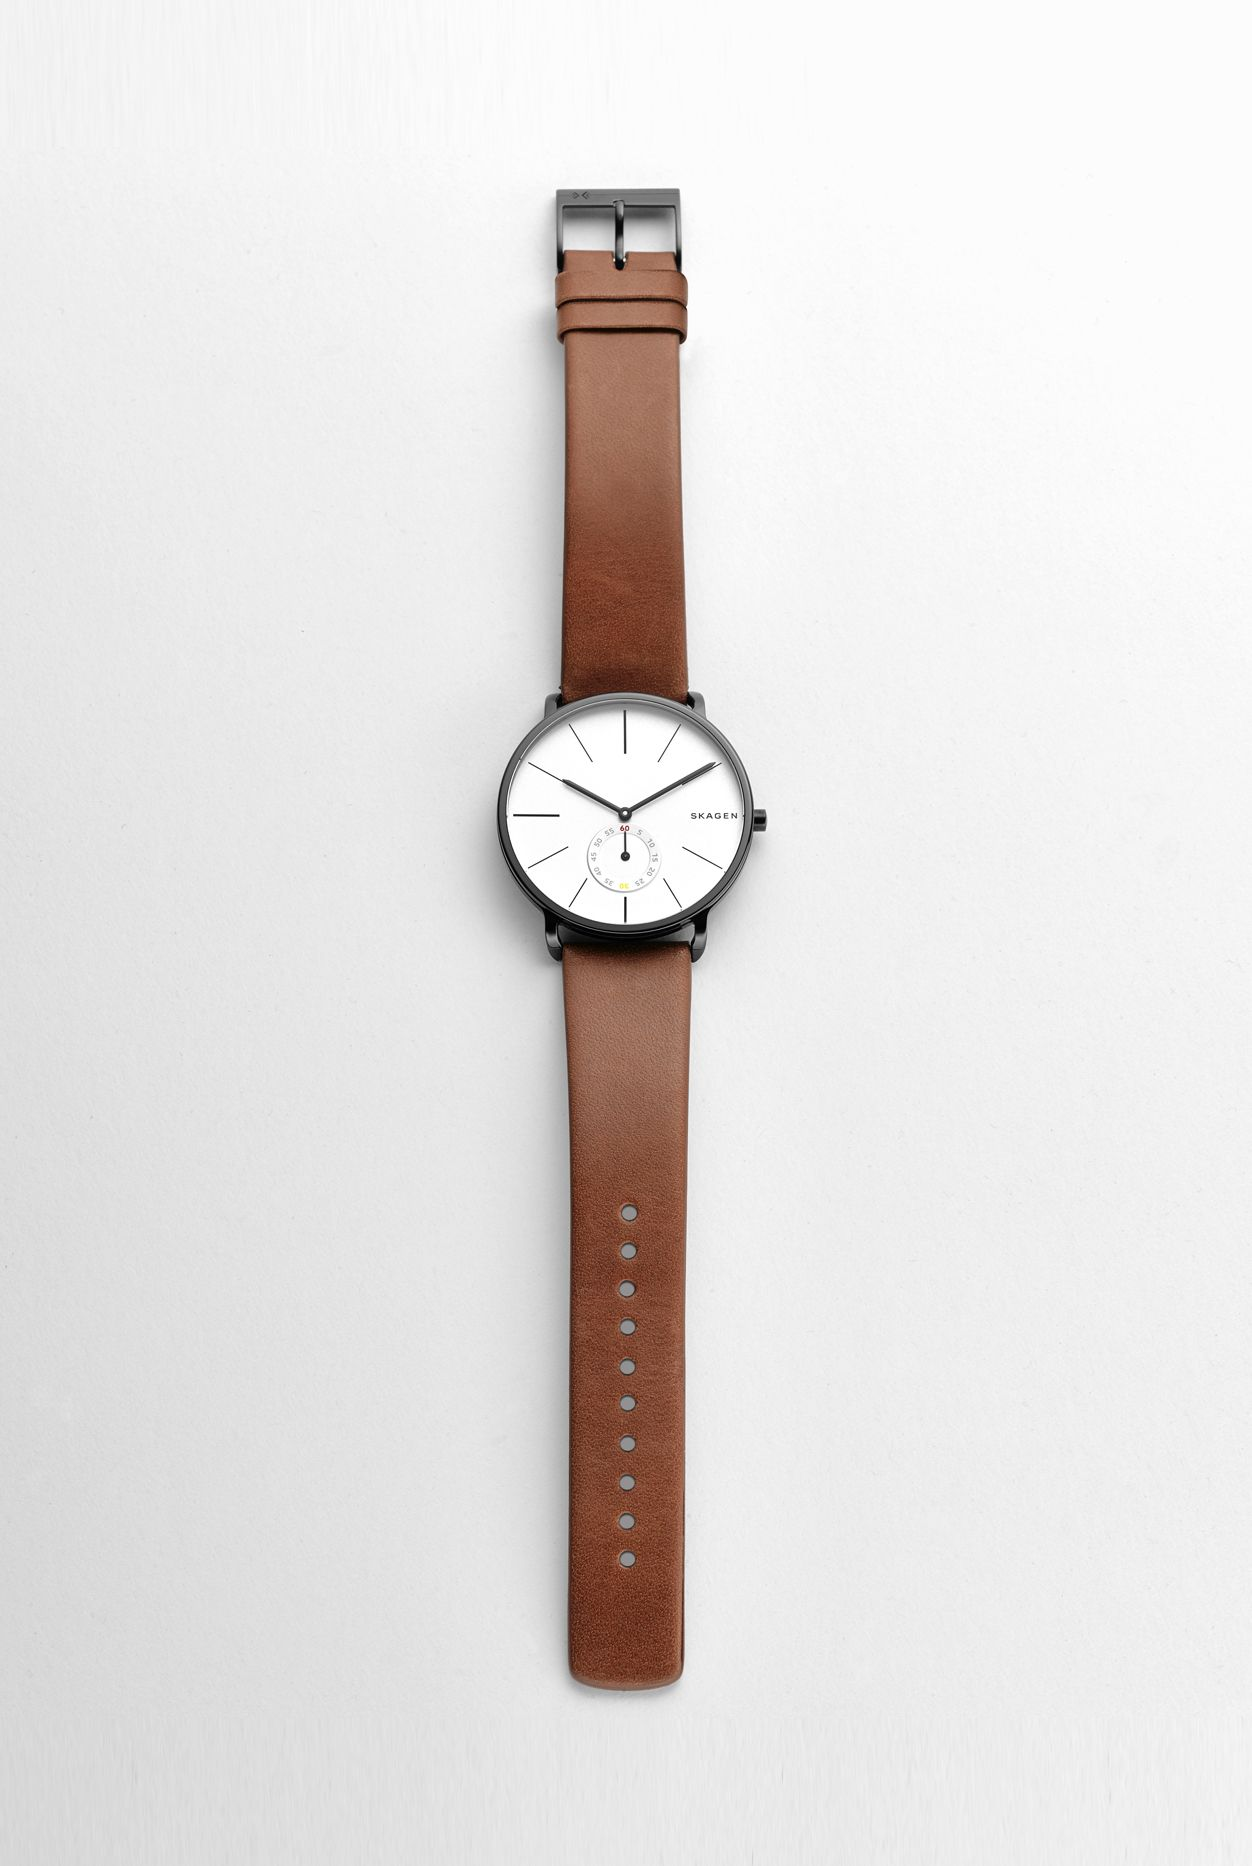 leather husband wedding day a strap thanks quality he to on watches with mens clear watchshop our and given is shop face my moon classic watch skagen great gents it hagen com over the tan